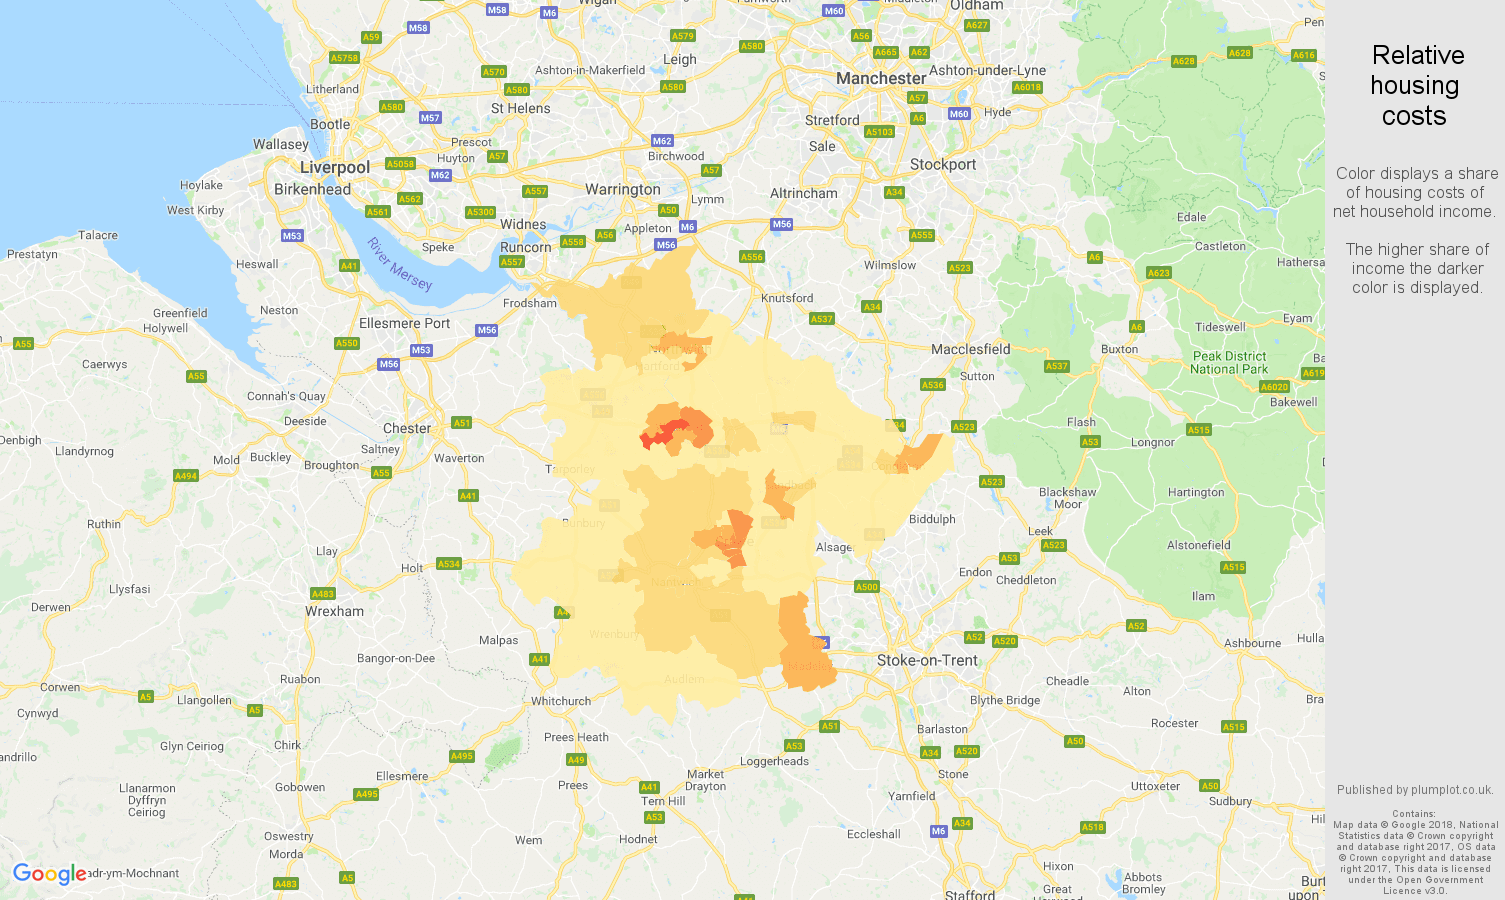 Crewe relative housing costs map